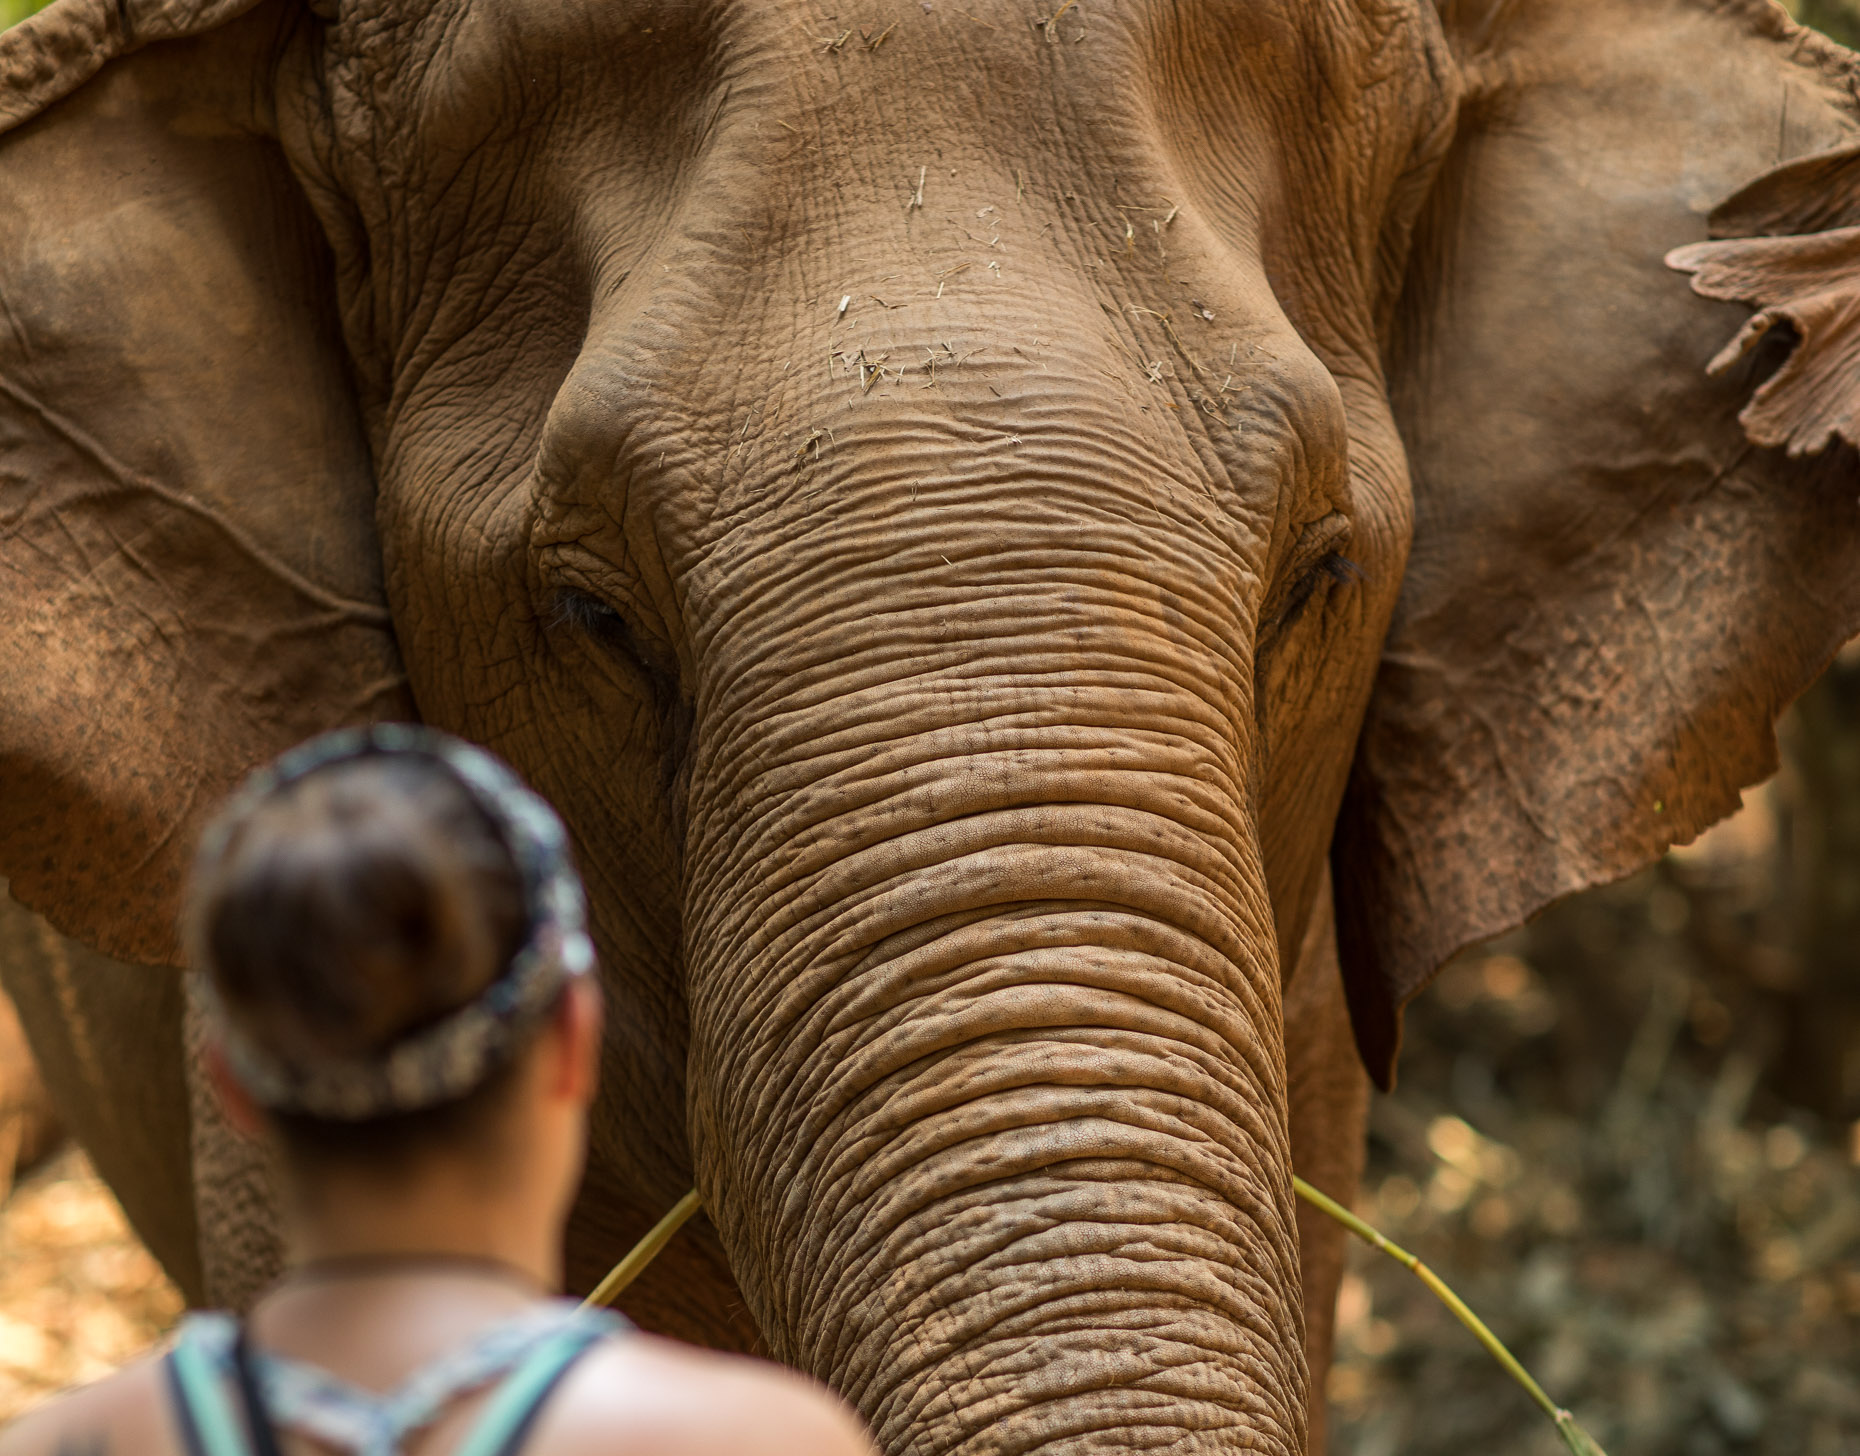 Woman stands face to face with an elephant